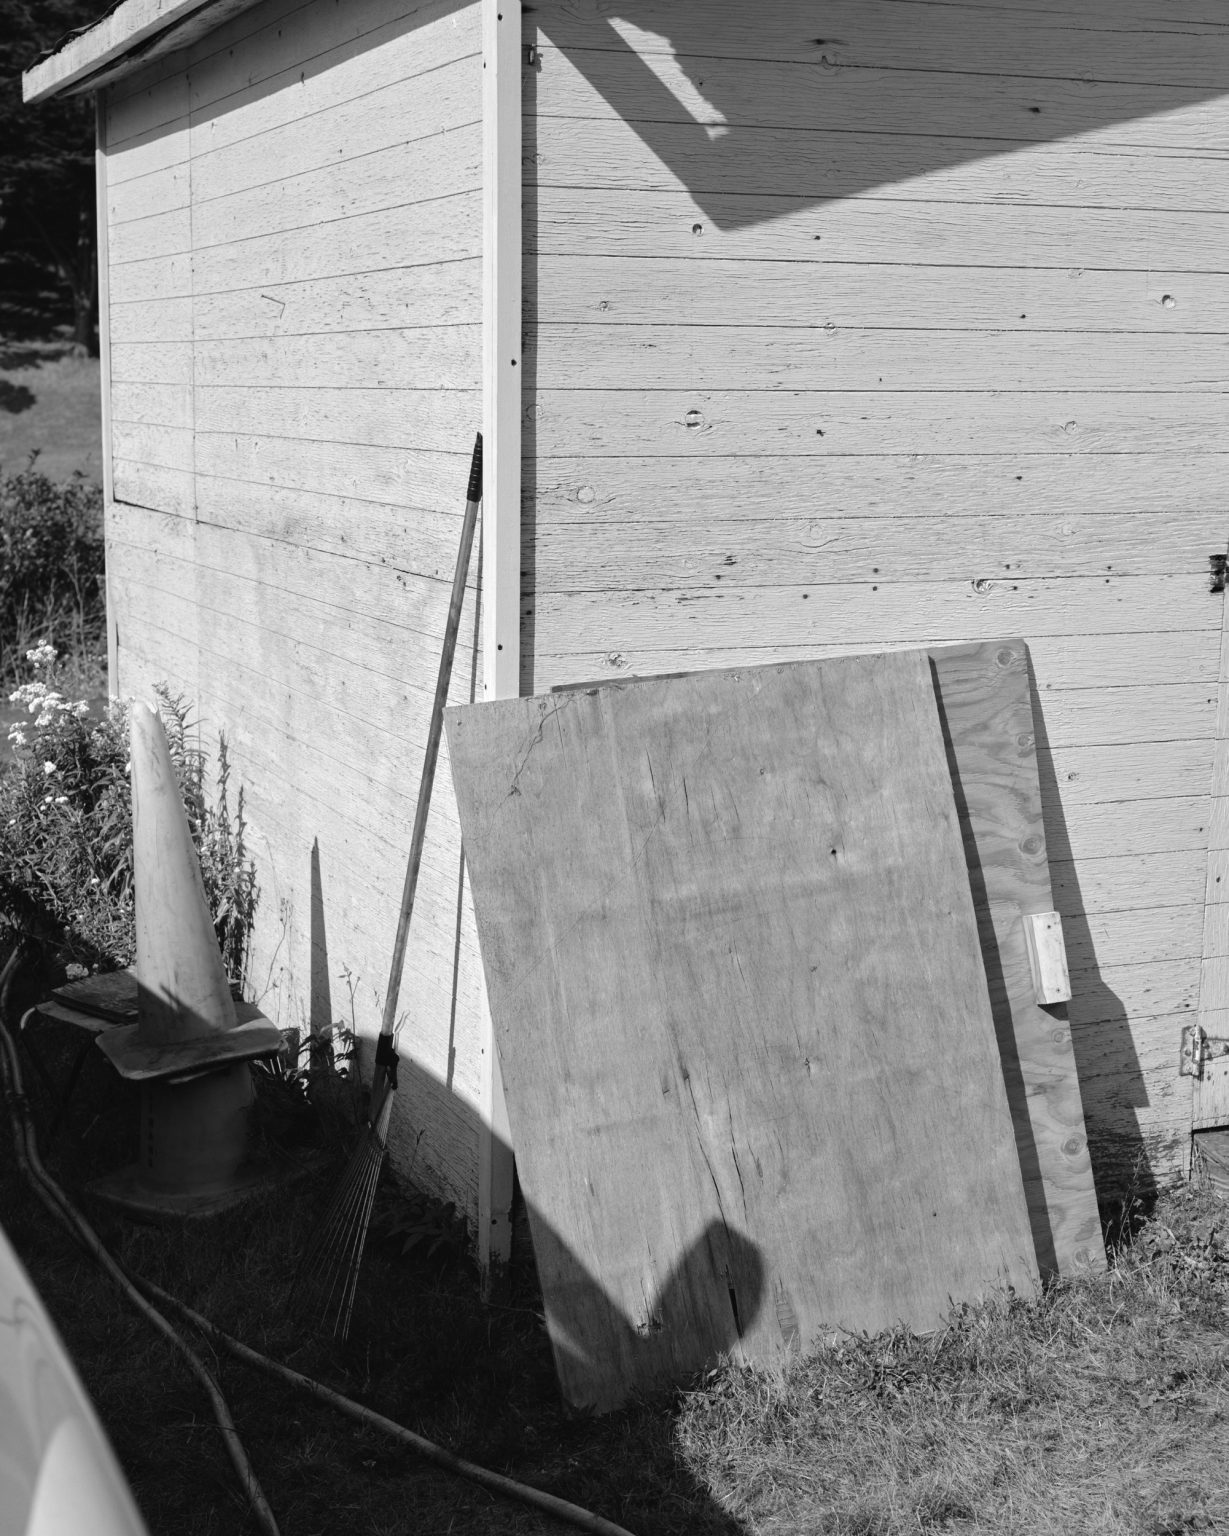 Rake and wood leaning on a shed. California 2020